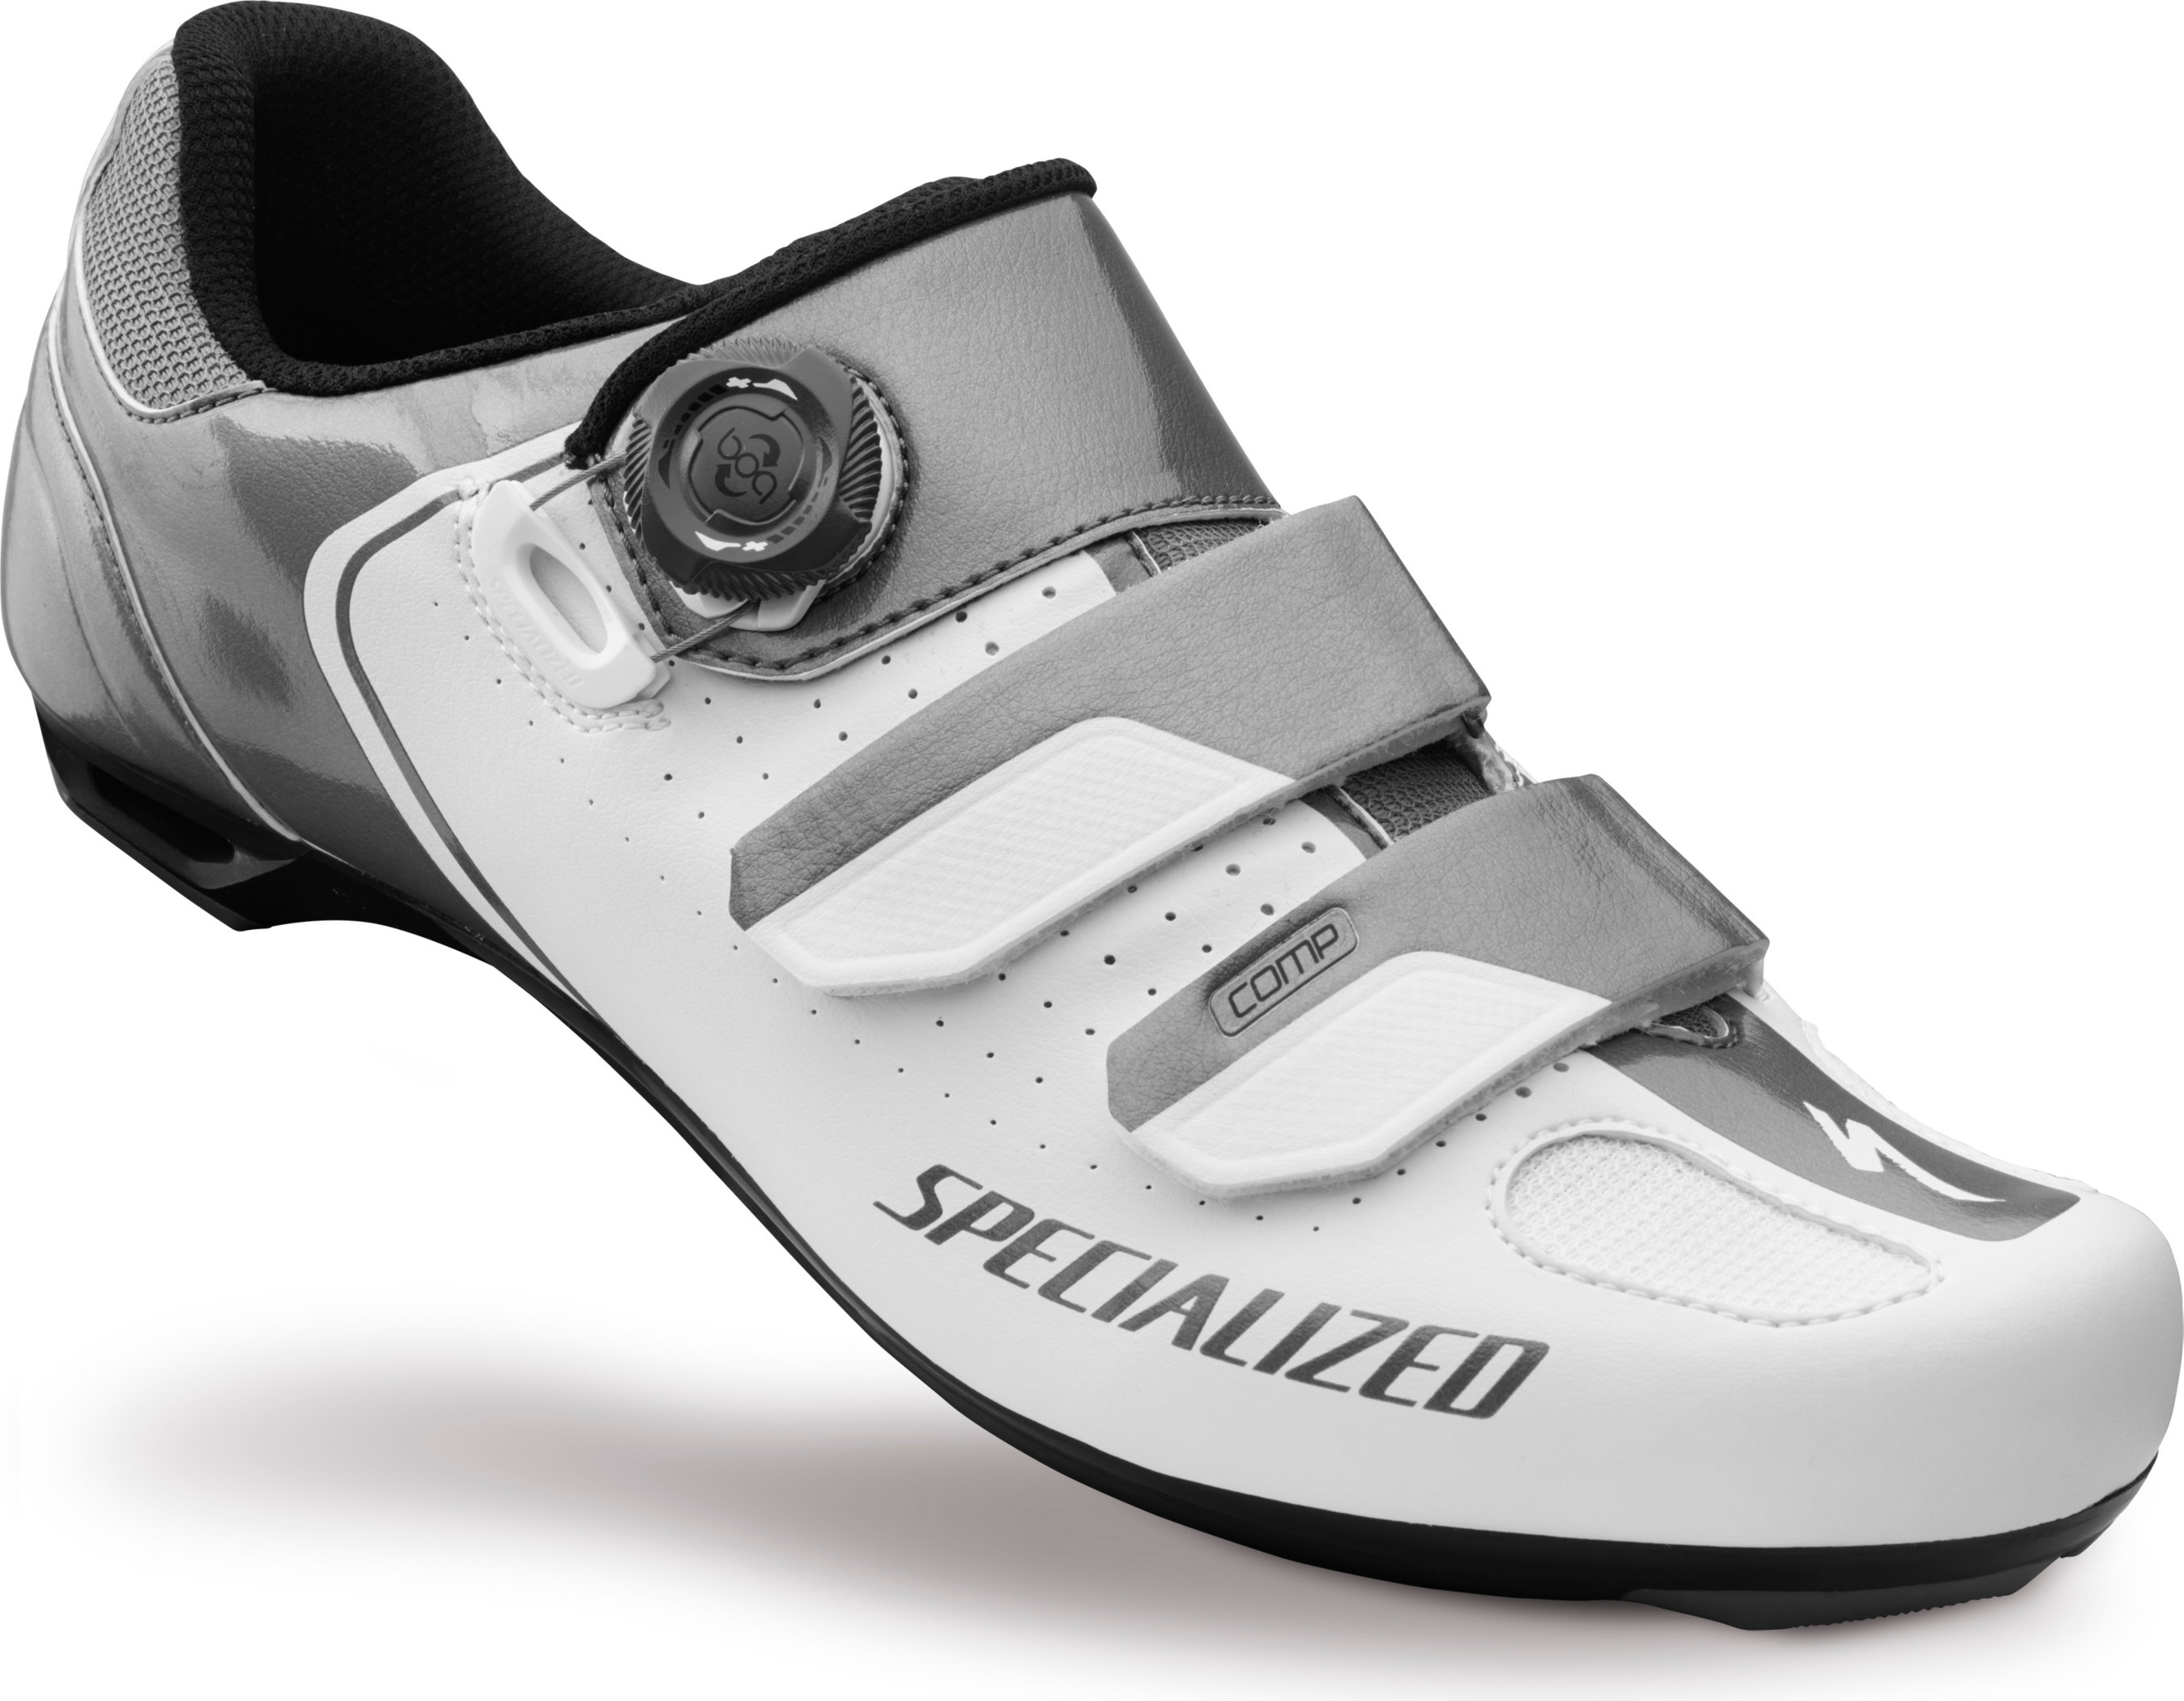 SPECIALIZED COMP RD SHOE WHT/TI 49/14.5 - Bikedreams & Dustbikes